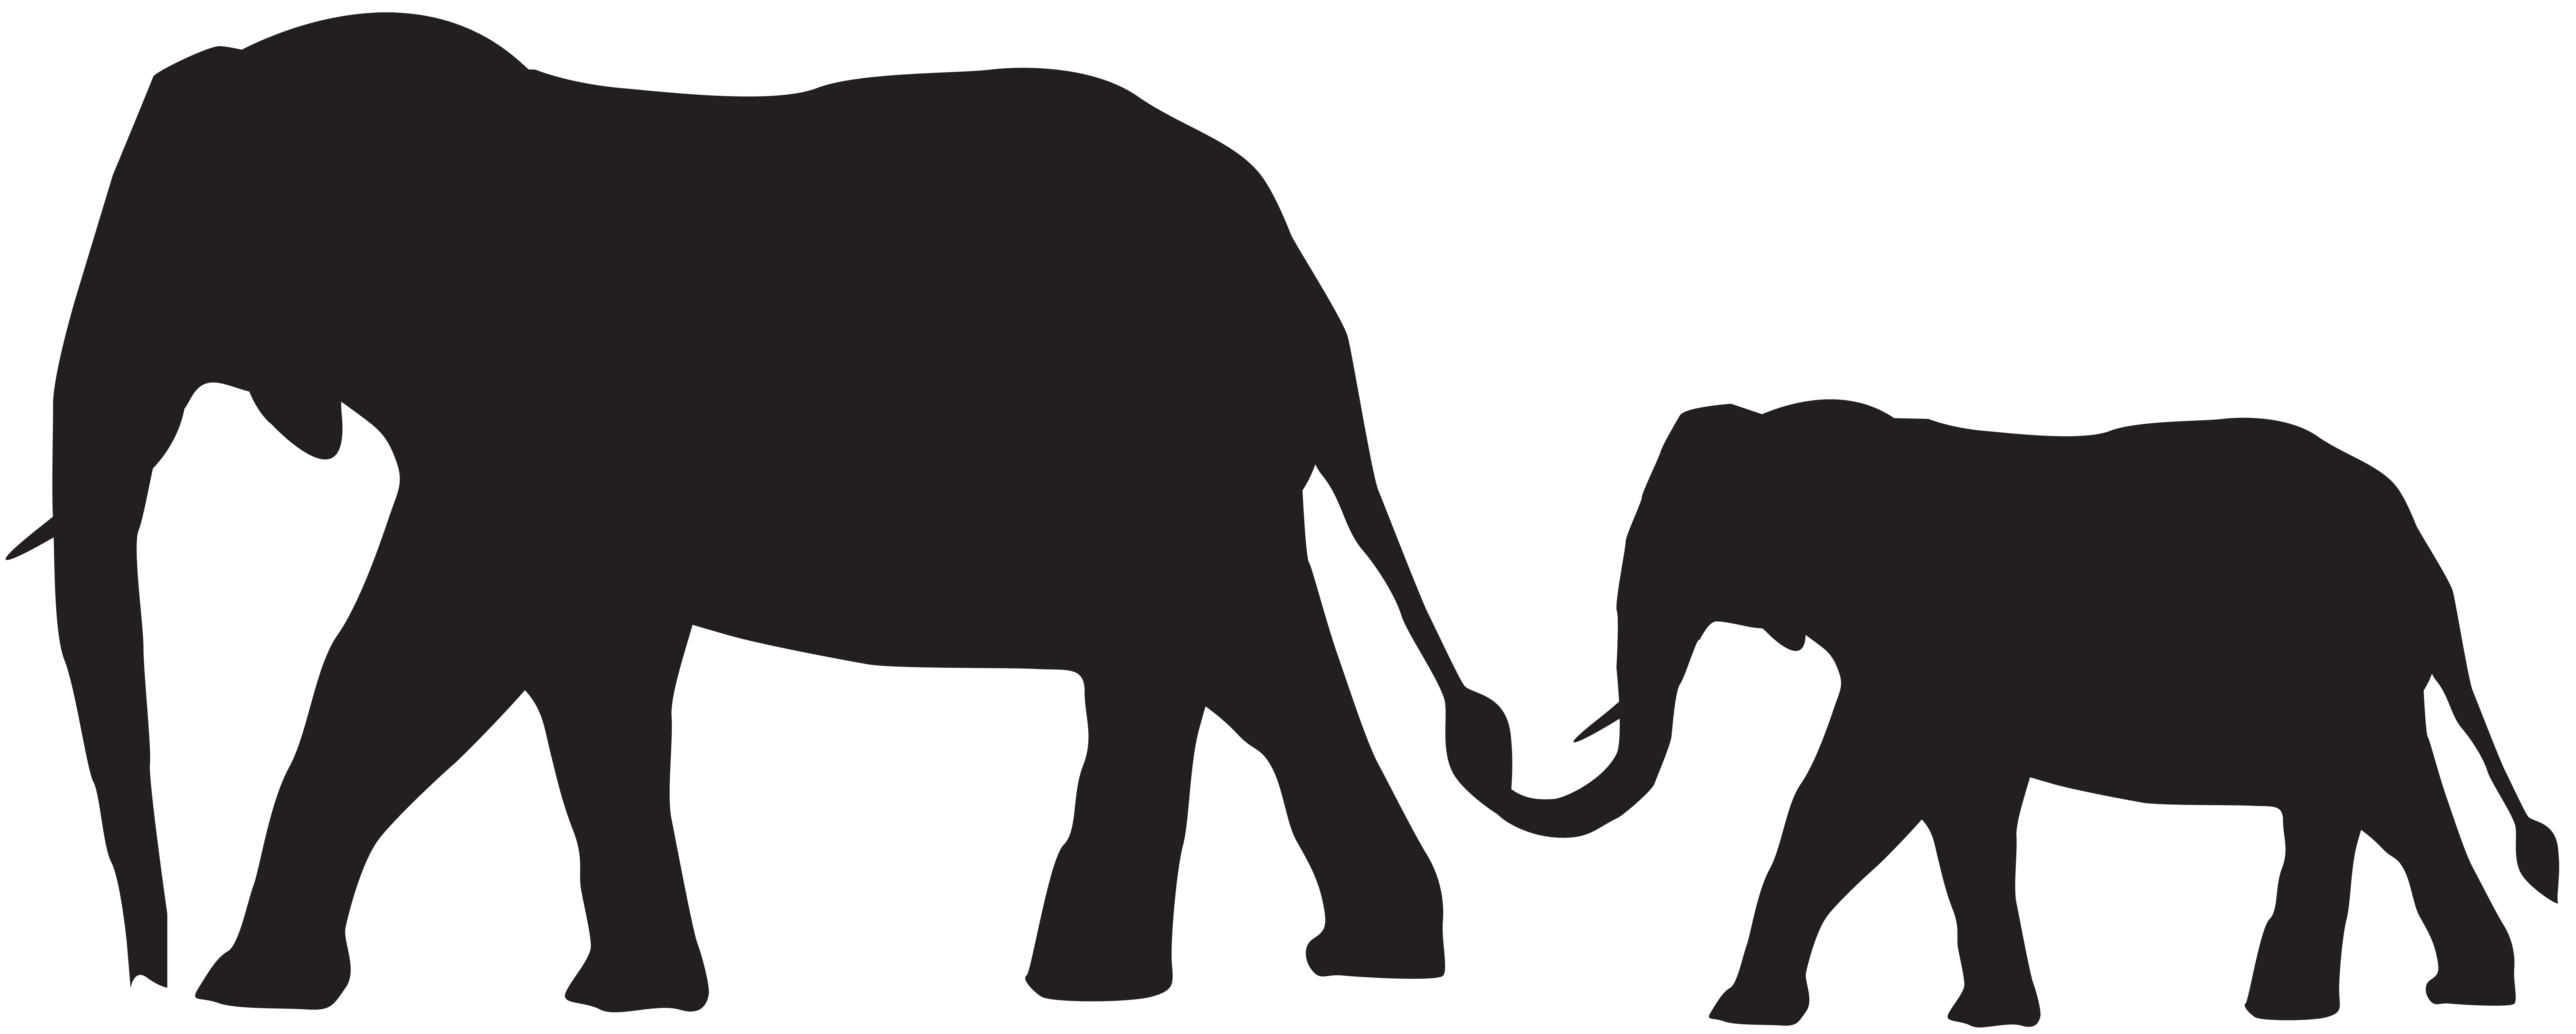 Asian elephant at getdrawings. Mother clipart silhouette clipart royalty free stock